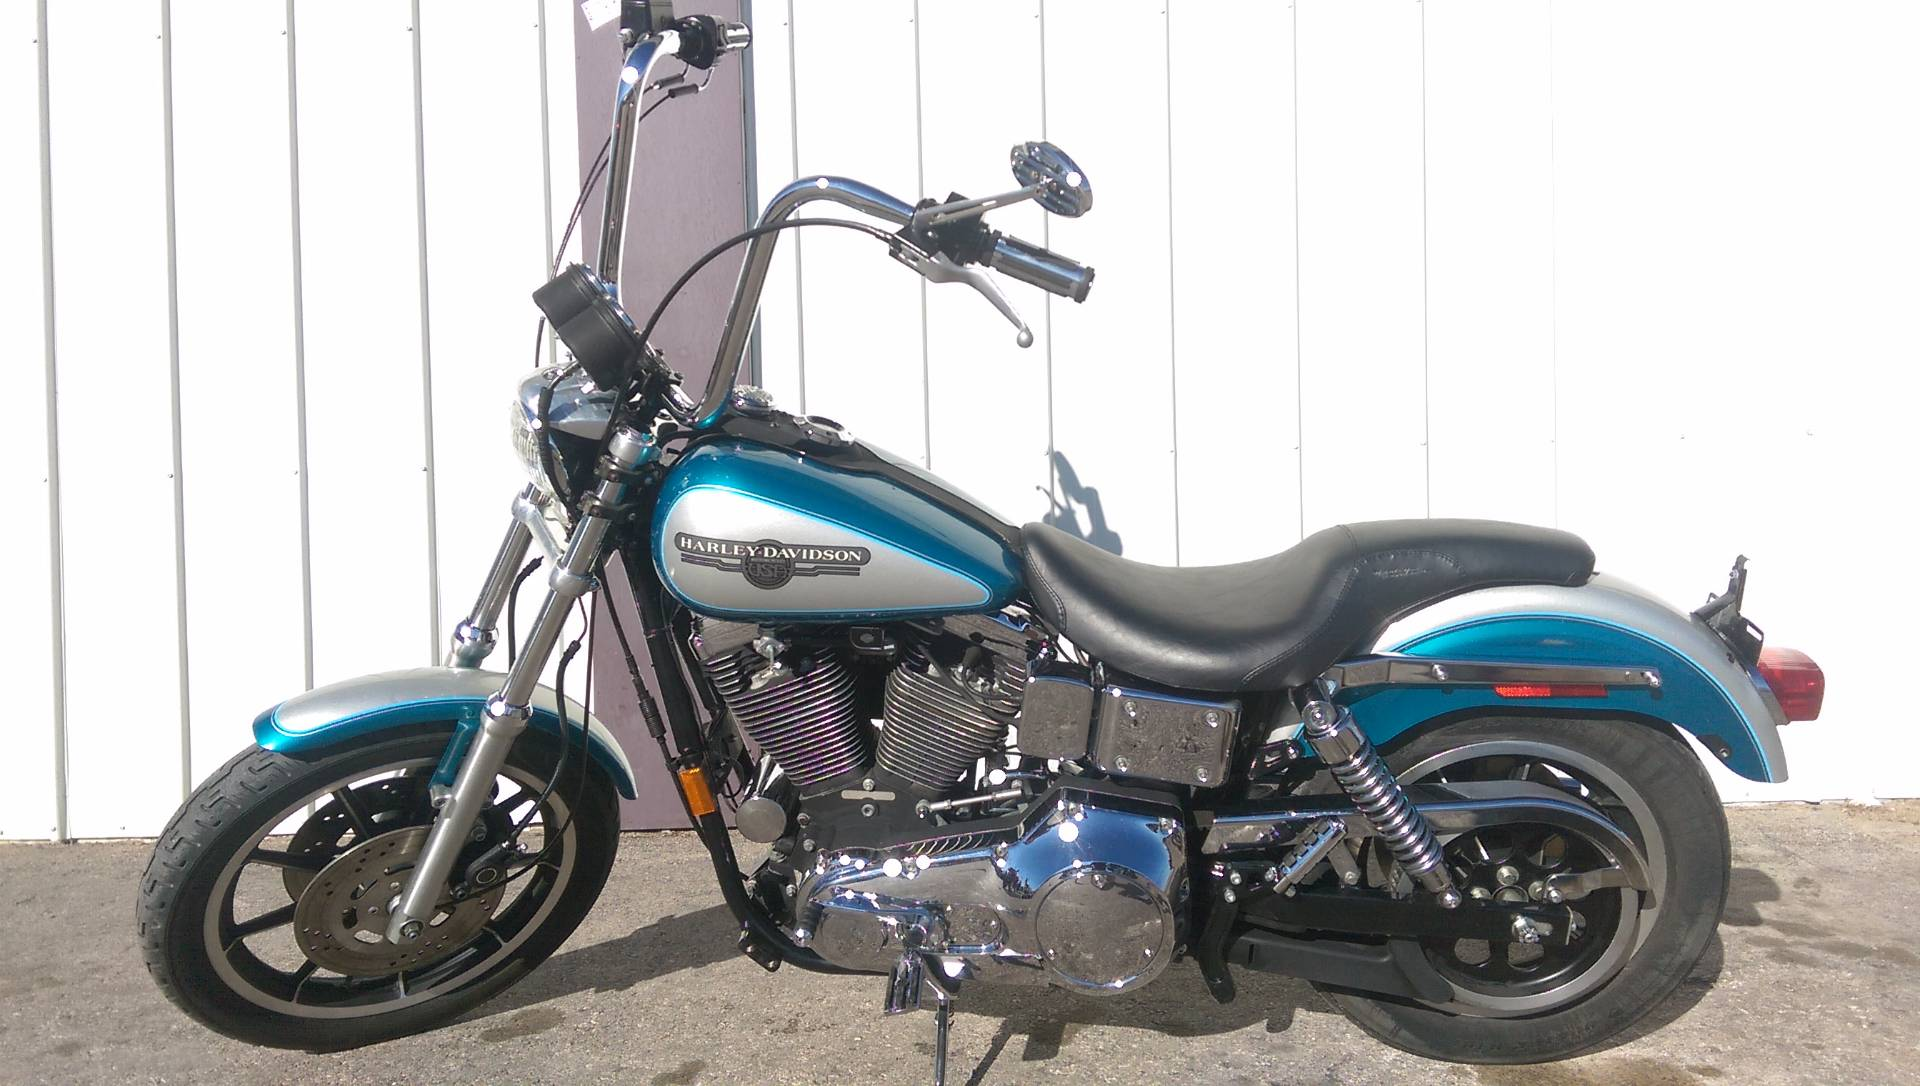 fxds convertible 1997 with Motorcycles Harley Davidson Fxds Dyna Convertible 1994 02e3266e 06a6 440c Bfe3 A6b401439584 on Sold 1997 Harley Davidson Fxds Dyna Convertible moreover Motorcycles For Sale In Philadelphia Used Motorcycles On additionally 476031 Dyna Models Wiring Diagram Links Index Part 1 A 9 further 1997 Harley Davidson Fxds Dyna Convertible 337440 moreover Arlen Ness Black Big Sucker Air Filter Kit 93 99 Harley Fxd Fxr Flst Fxst Flhr 10100876.